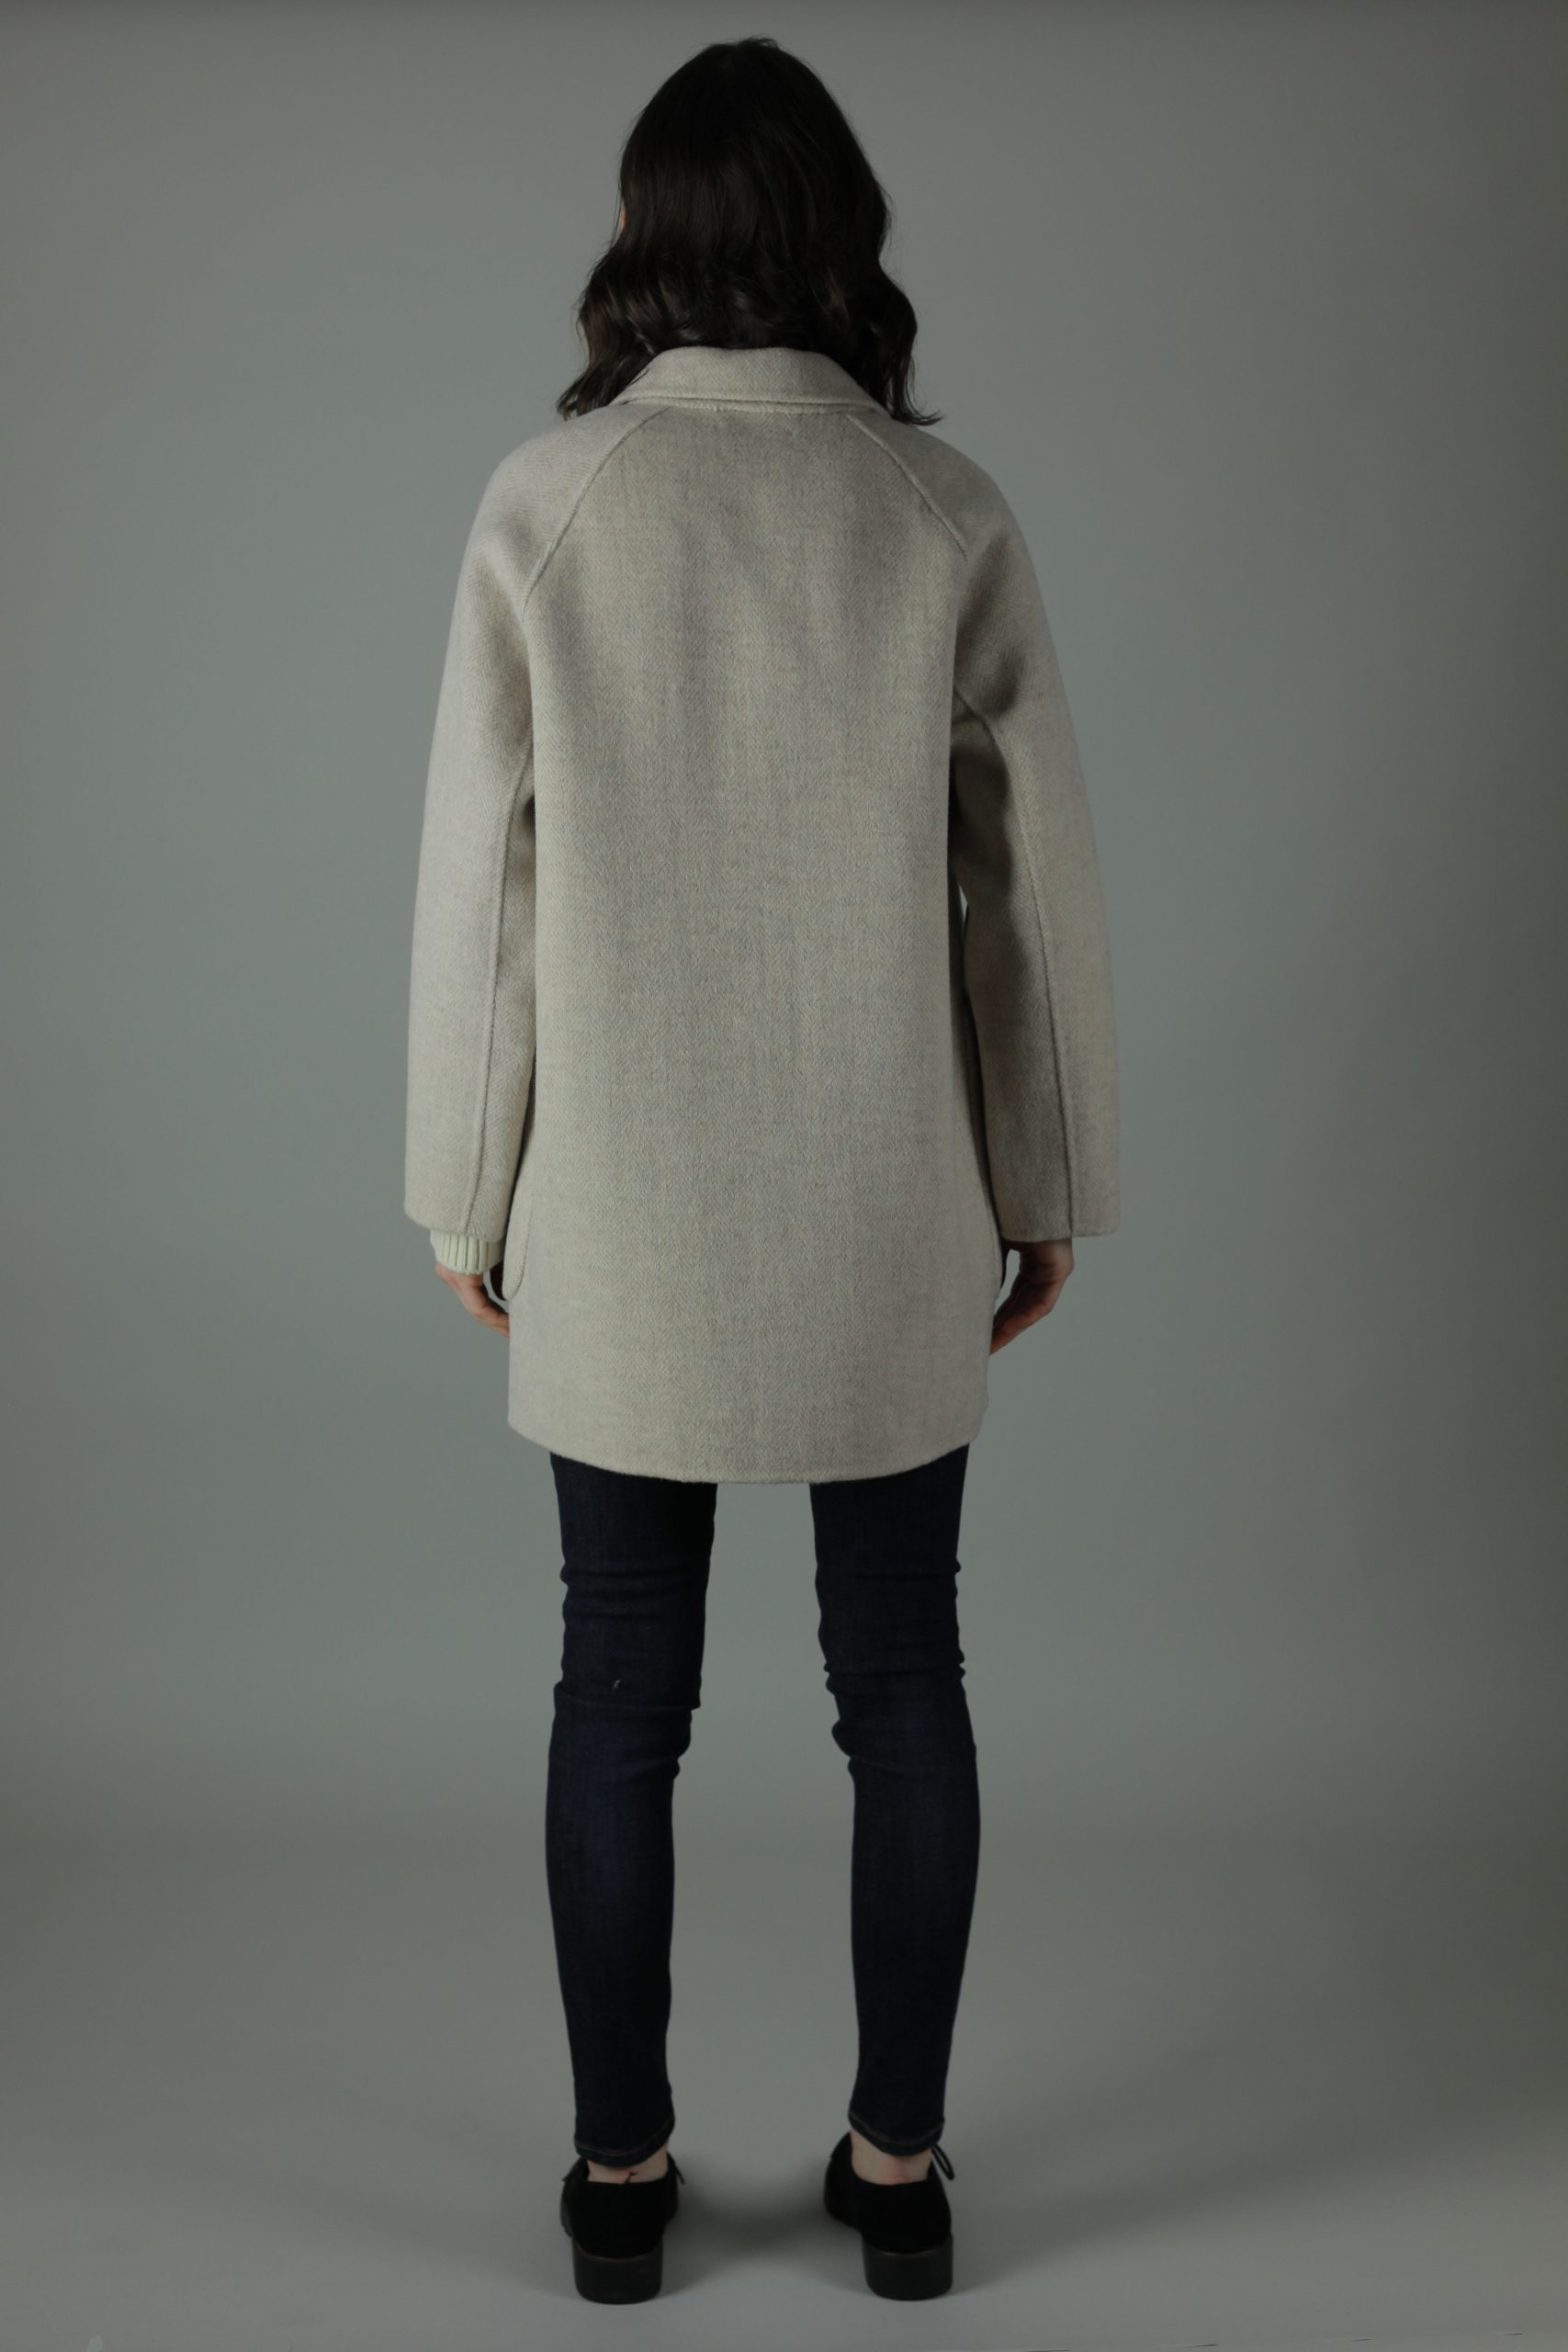 Casually luxurious is our oversized Ellen double-face Cashmere Coat. Thigh length for casual wear, this coat features 100% Cashmere, loose fitting style and beautiful marble effect buttons. Back View.